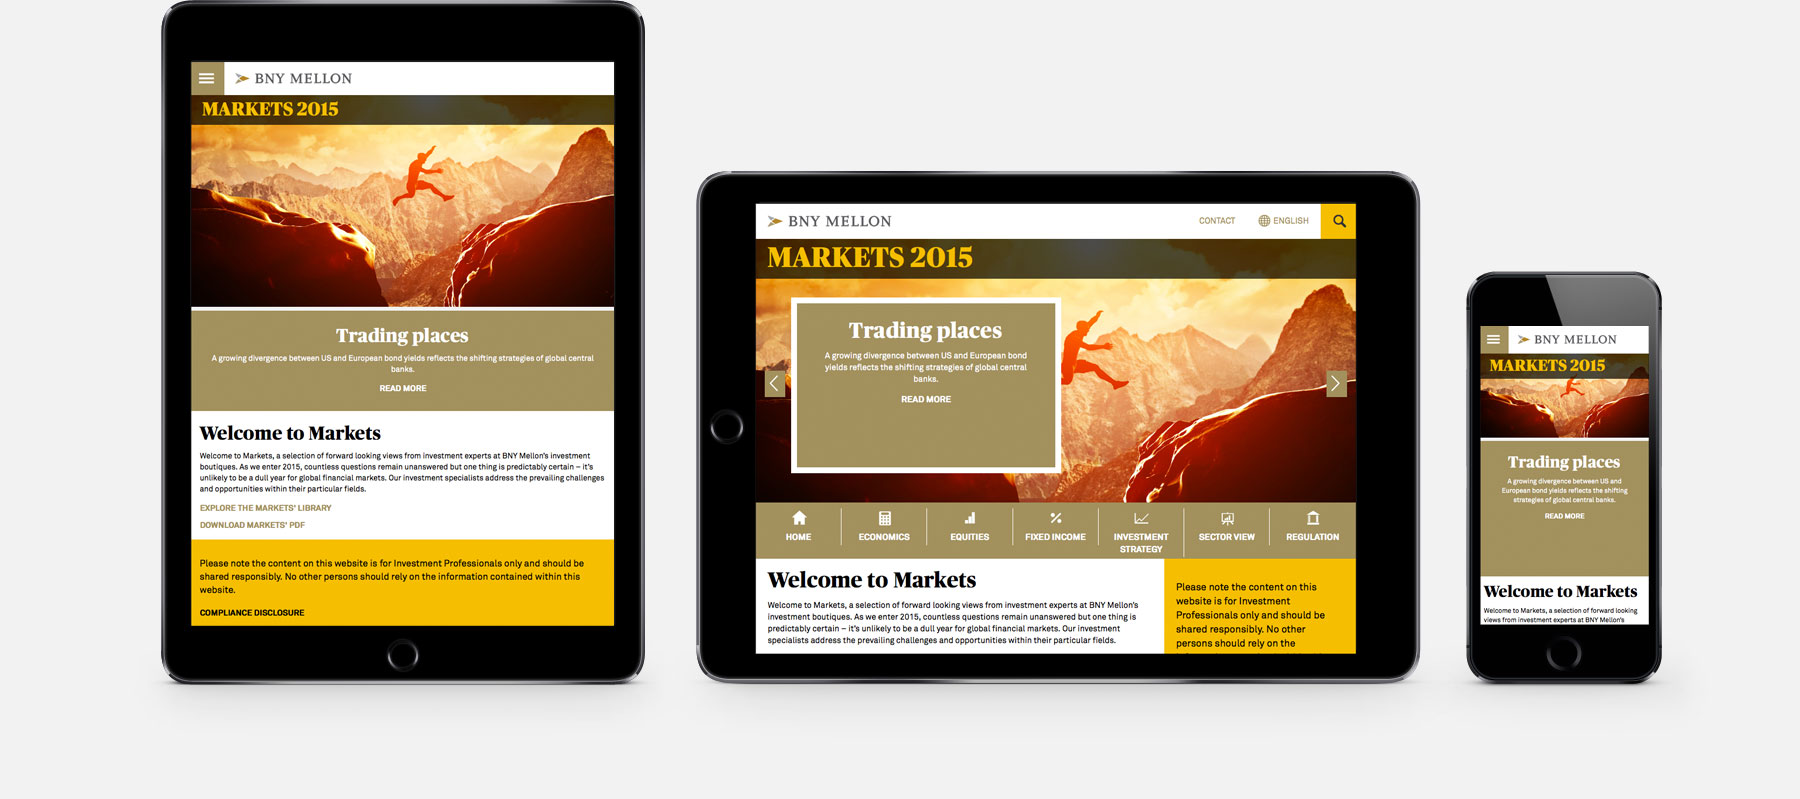 BNY Mellon Markets 2015 responsive web design